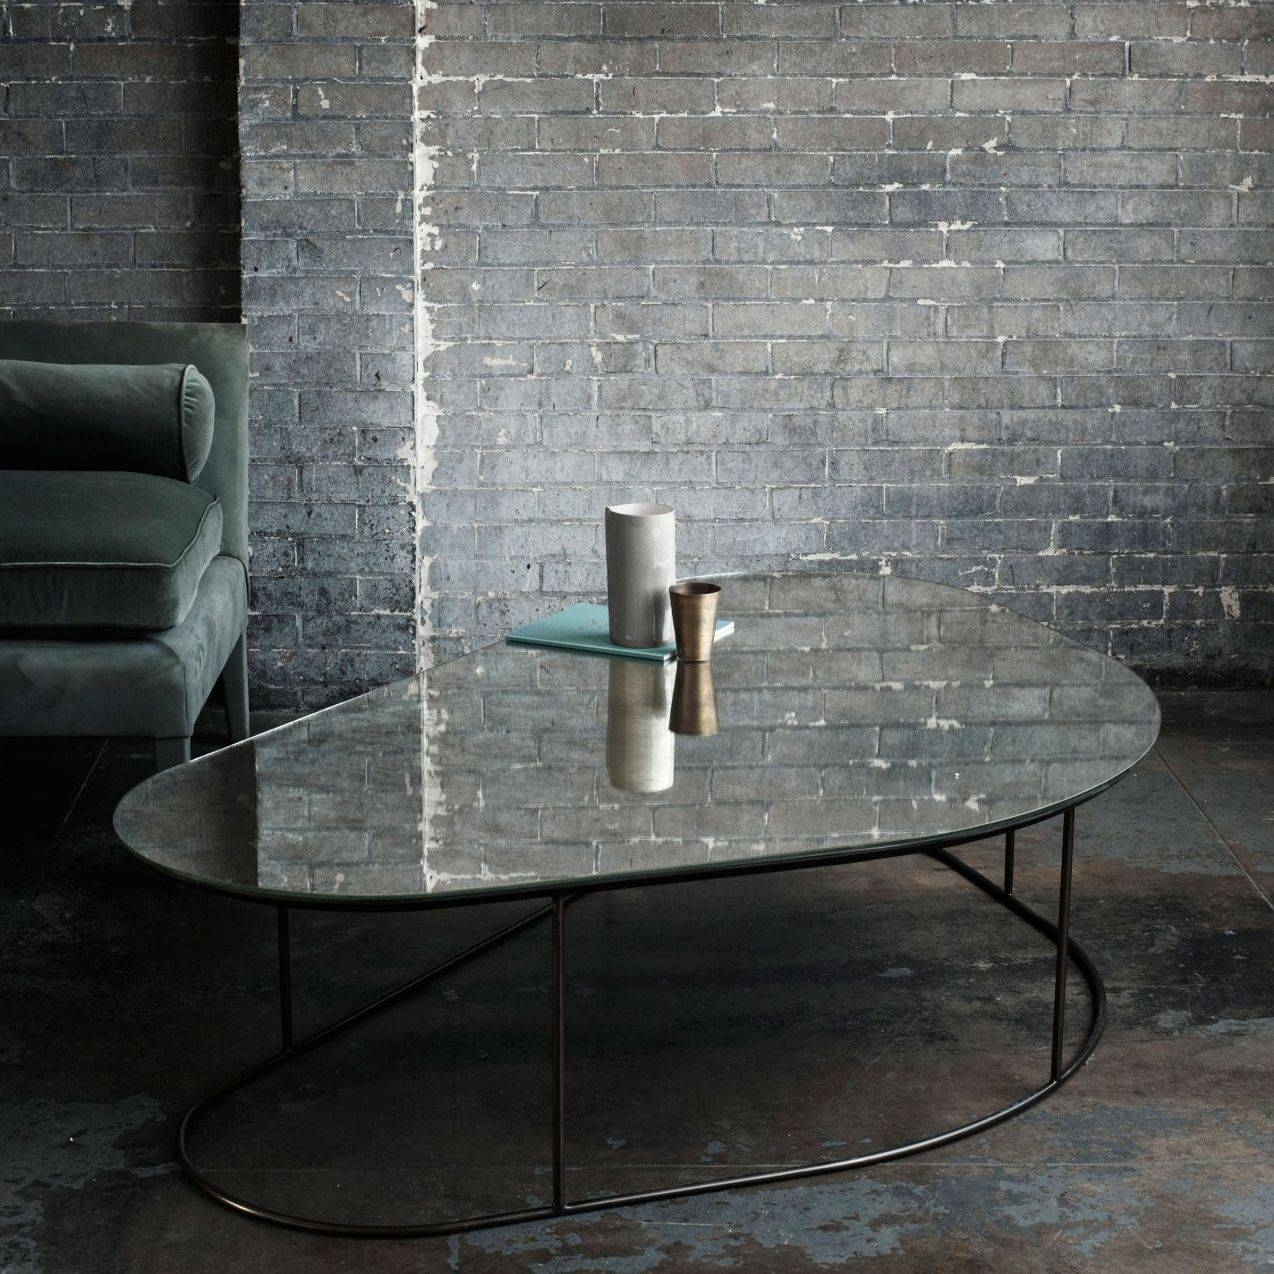 Contemporary Coffee Table / Glass / Steel / Triangular - Moon with regard to Mercury Glass Coffee Tables (Image 15 of 30)